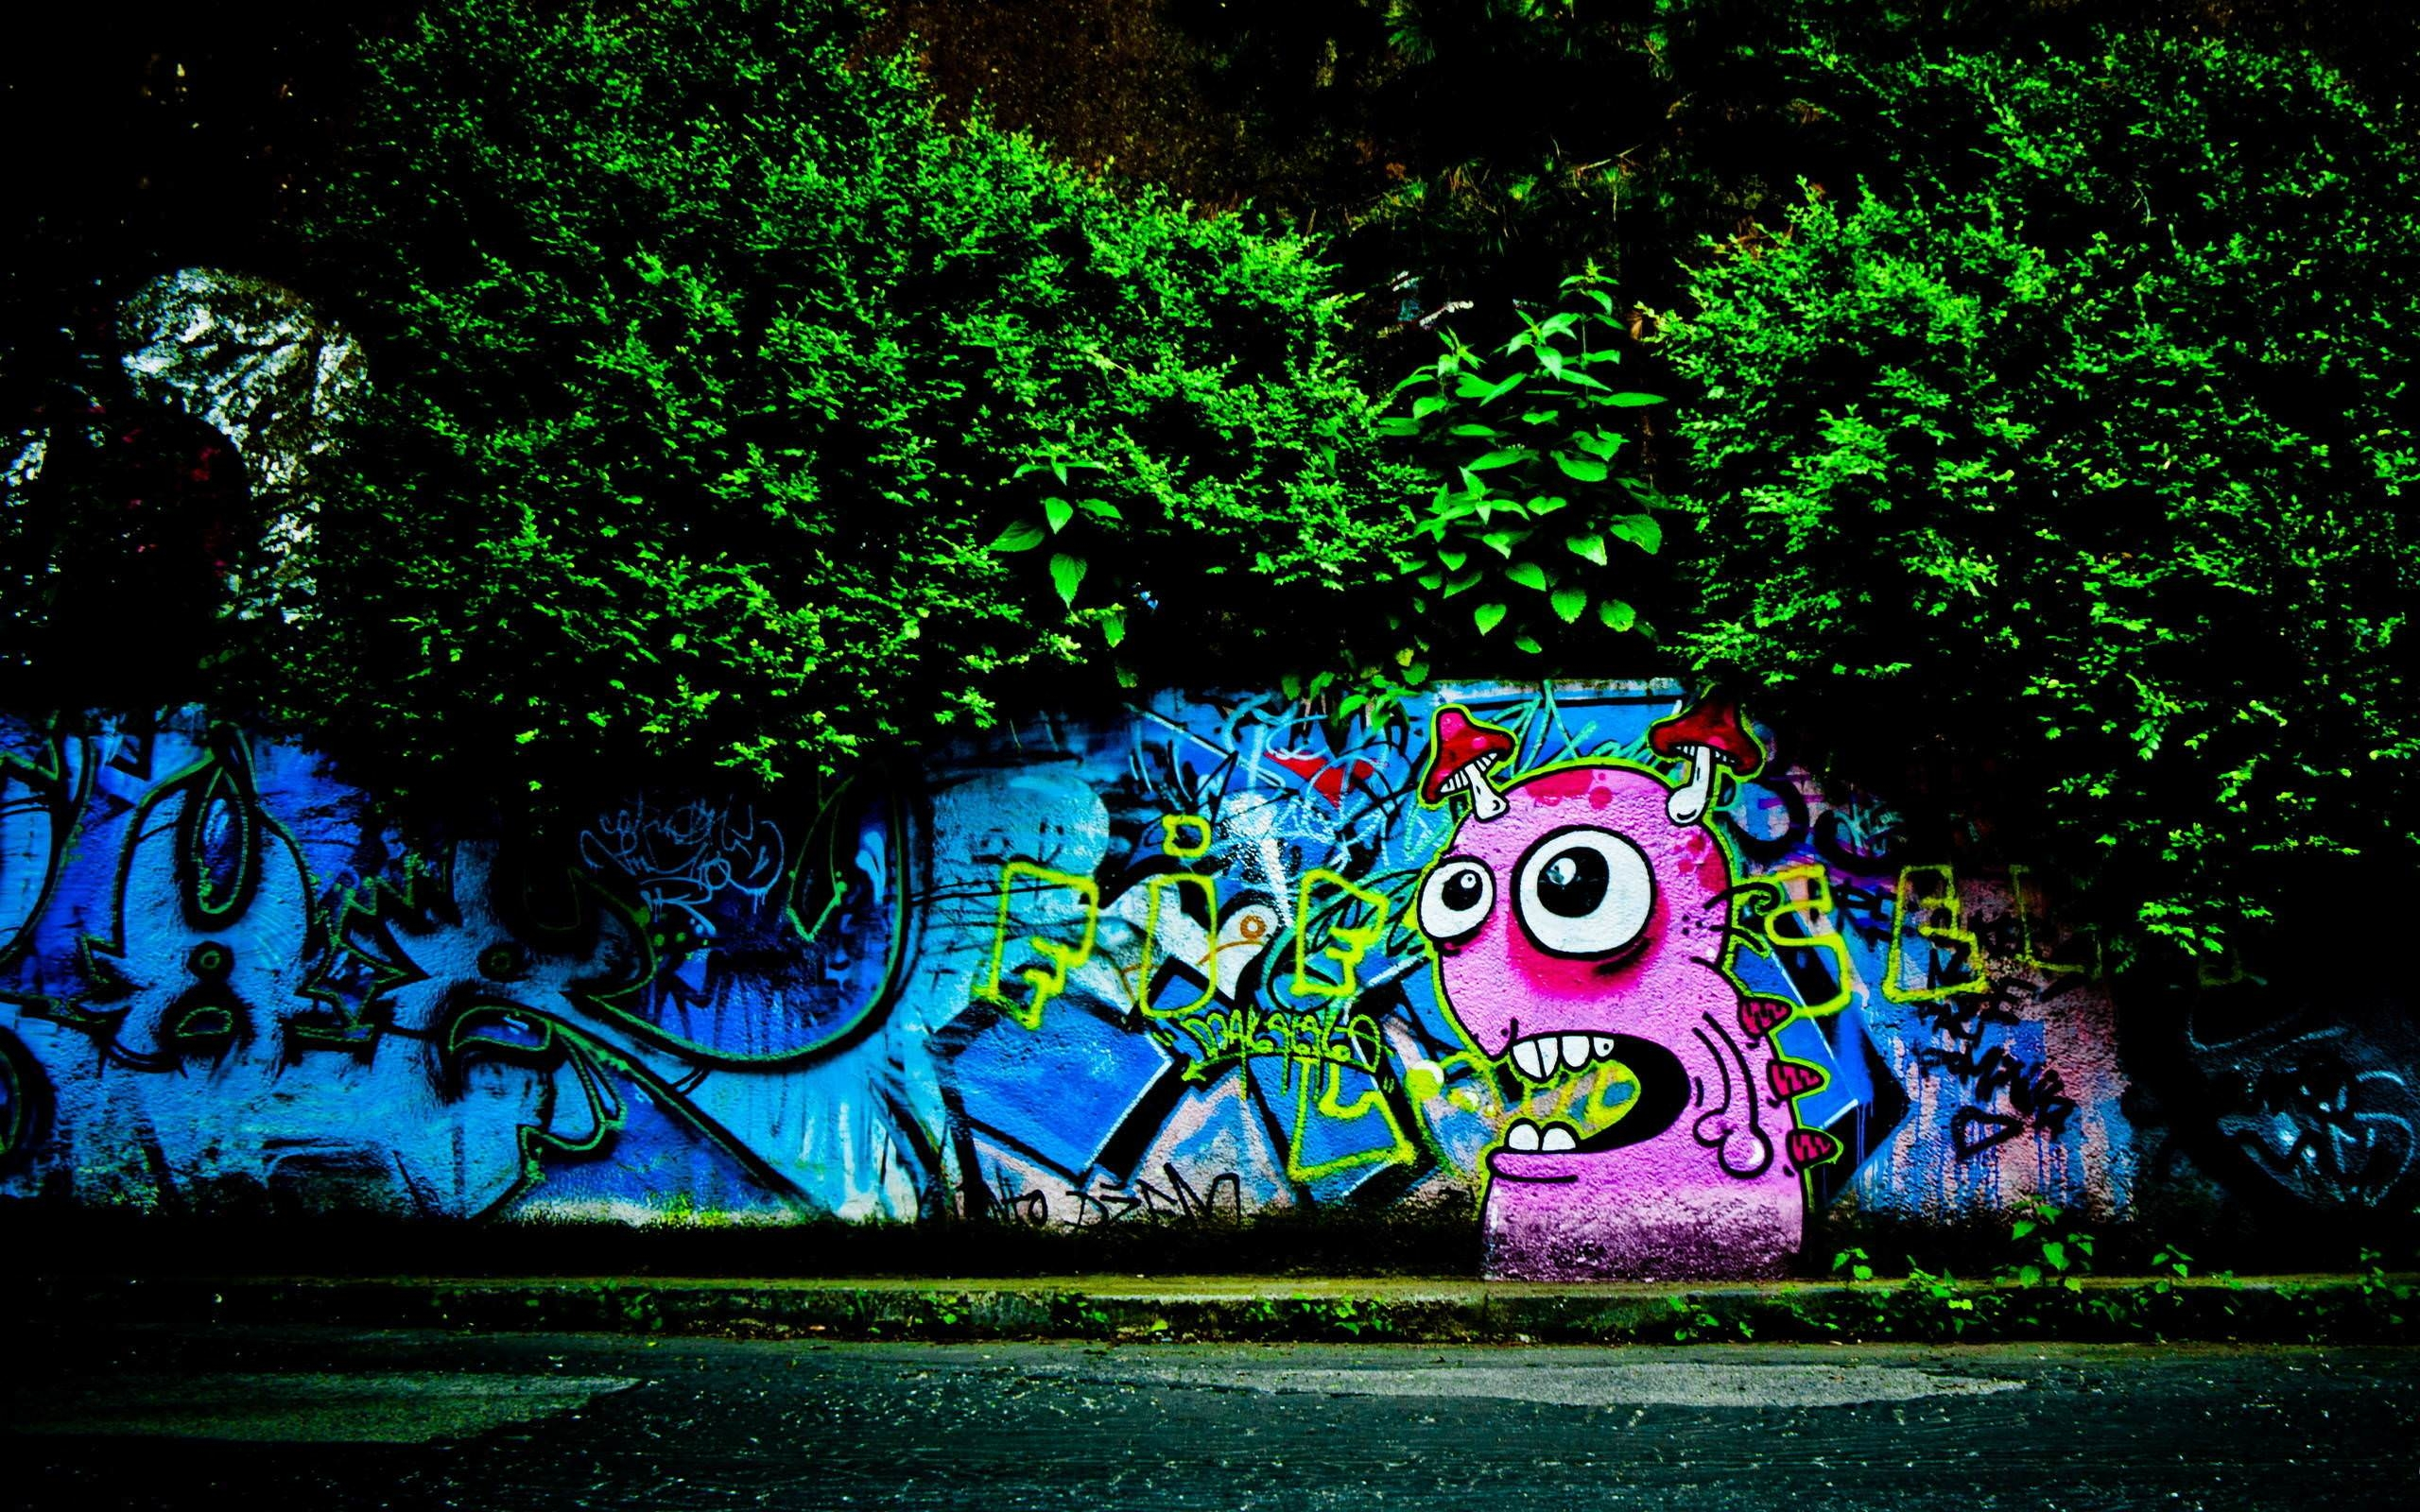 Graffiti wallpaper ·① Download free stunning backgrounds for